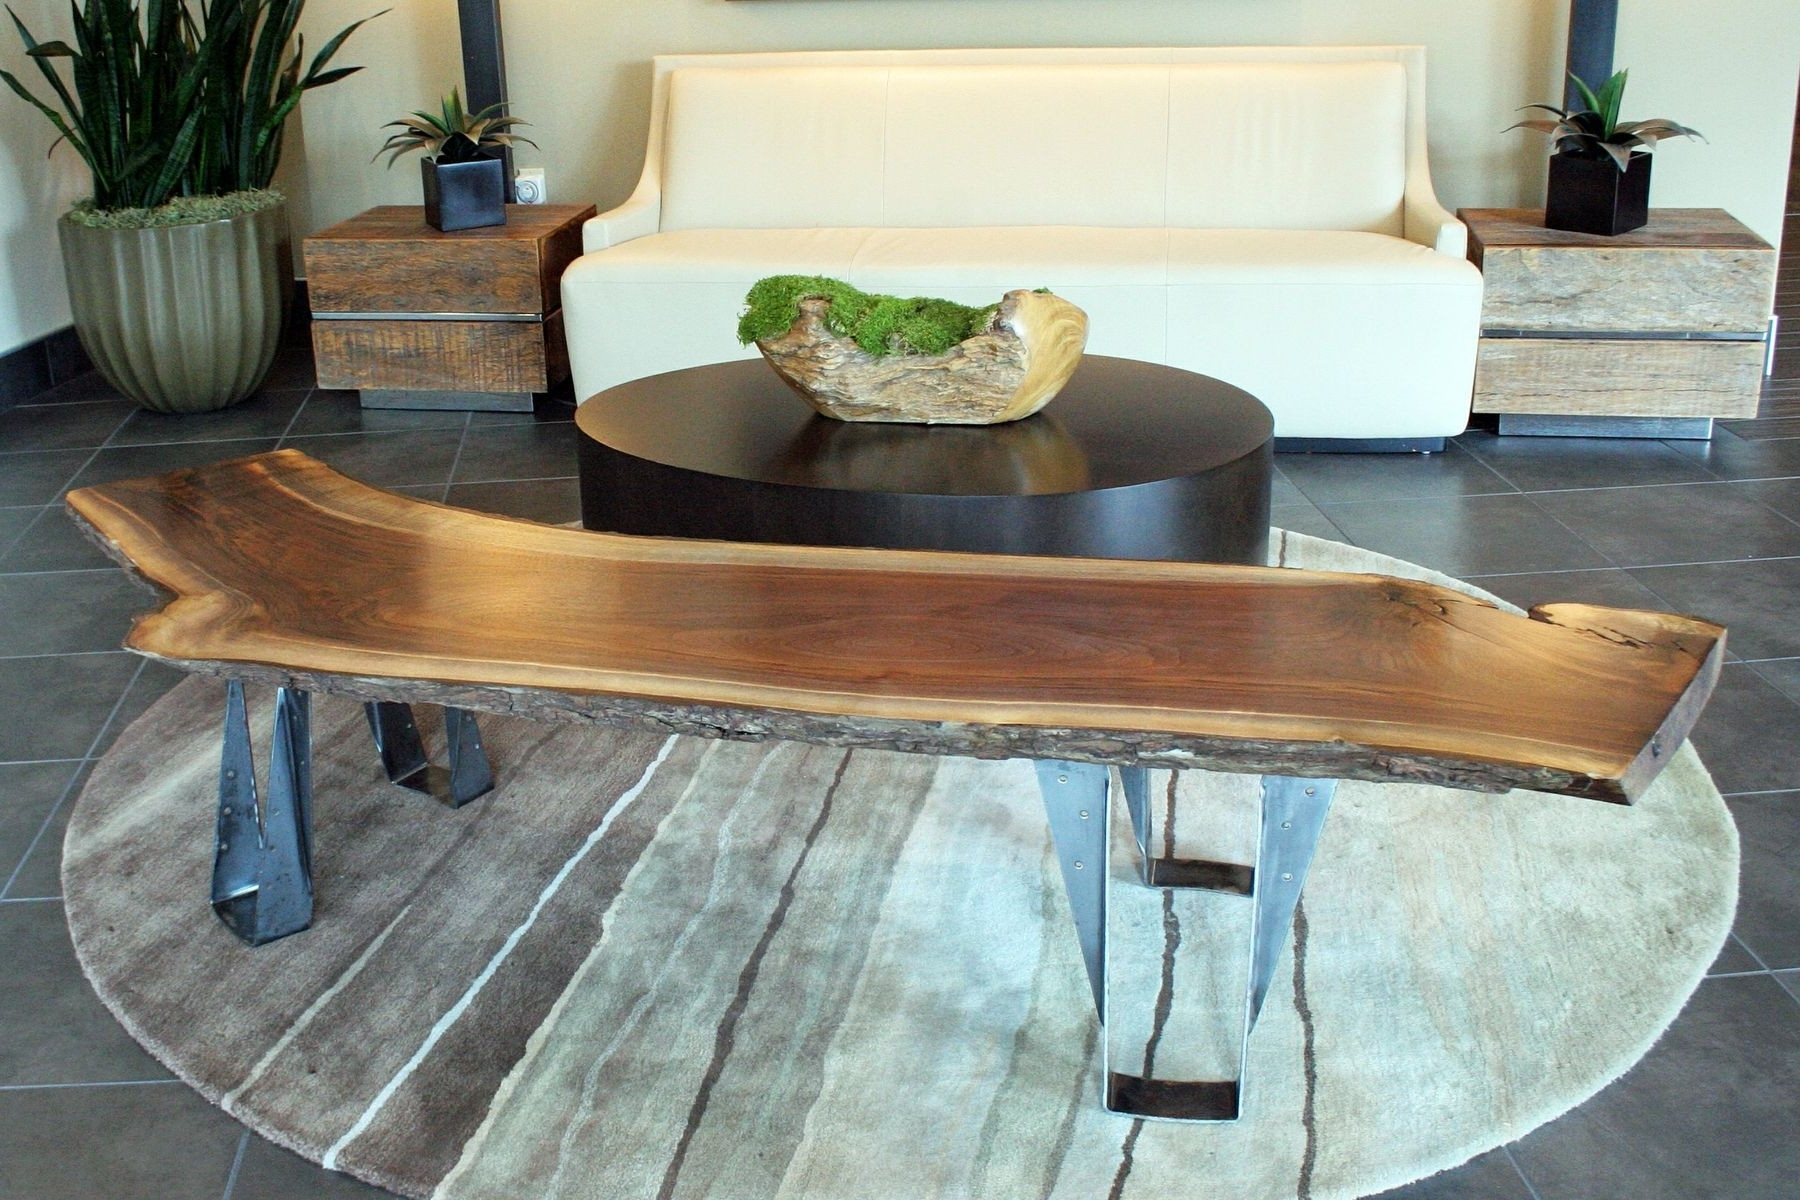 Mimodelaviation Pertaining To Most Recent Slab Large Marble Coffee Tables With Brass Base (View 11 of 20)